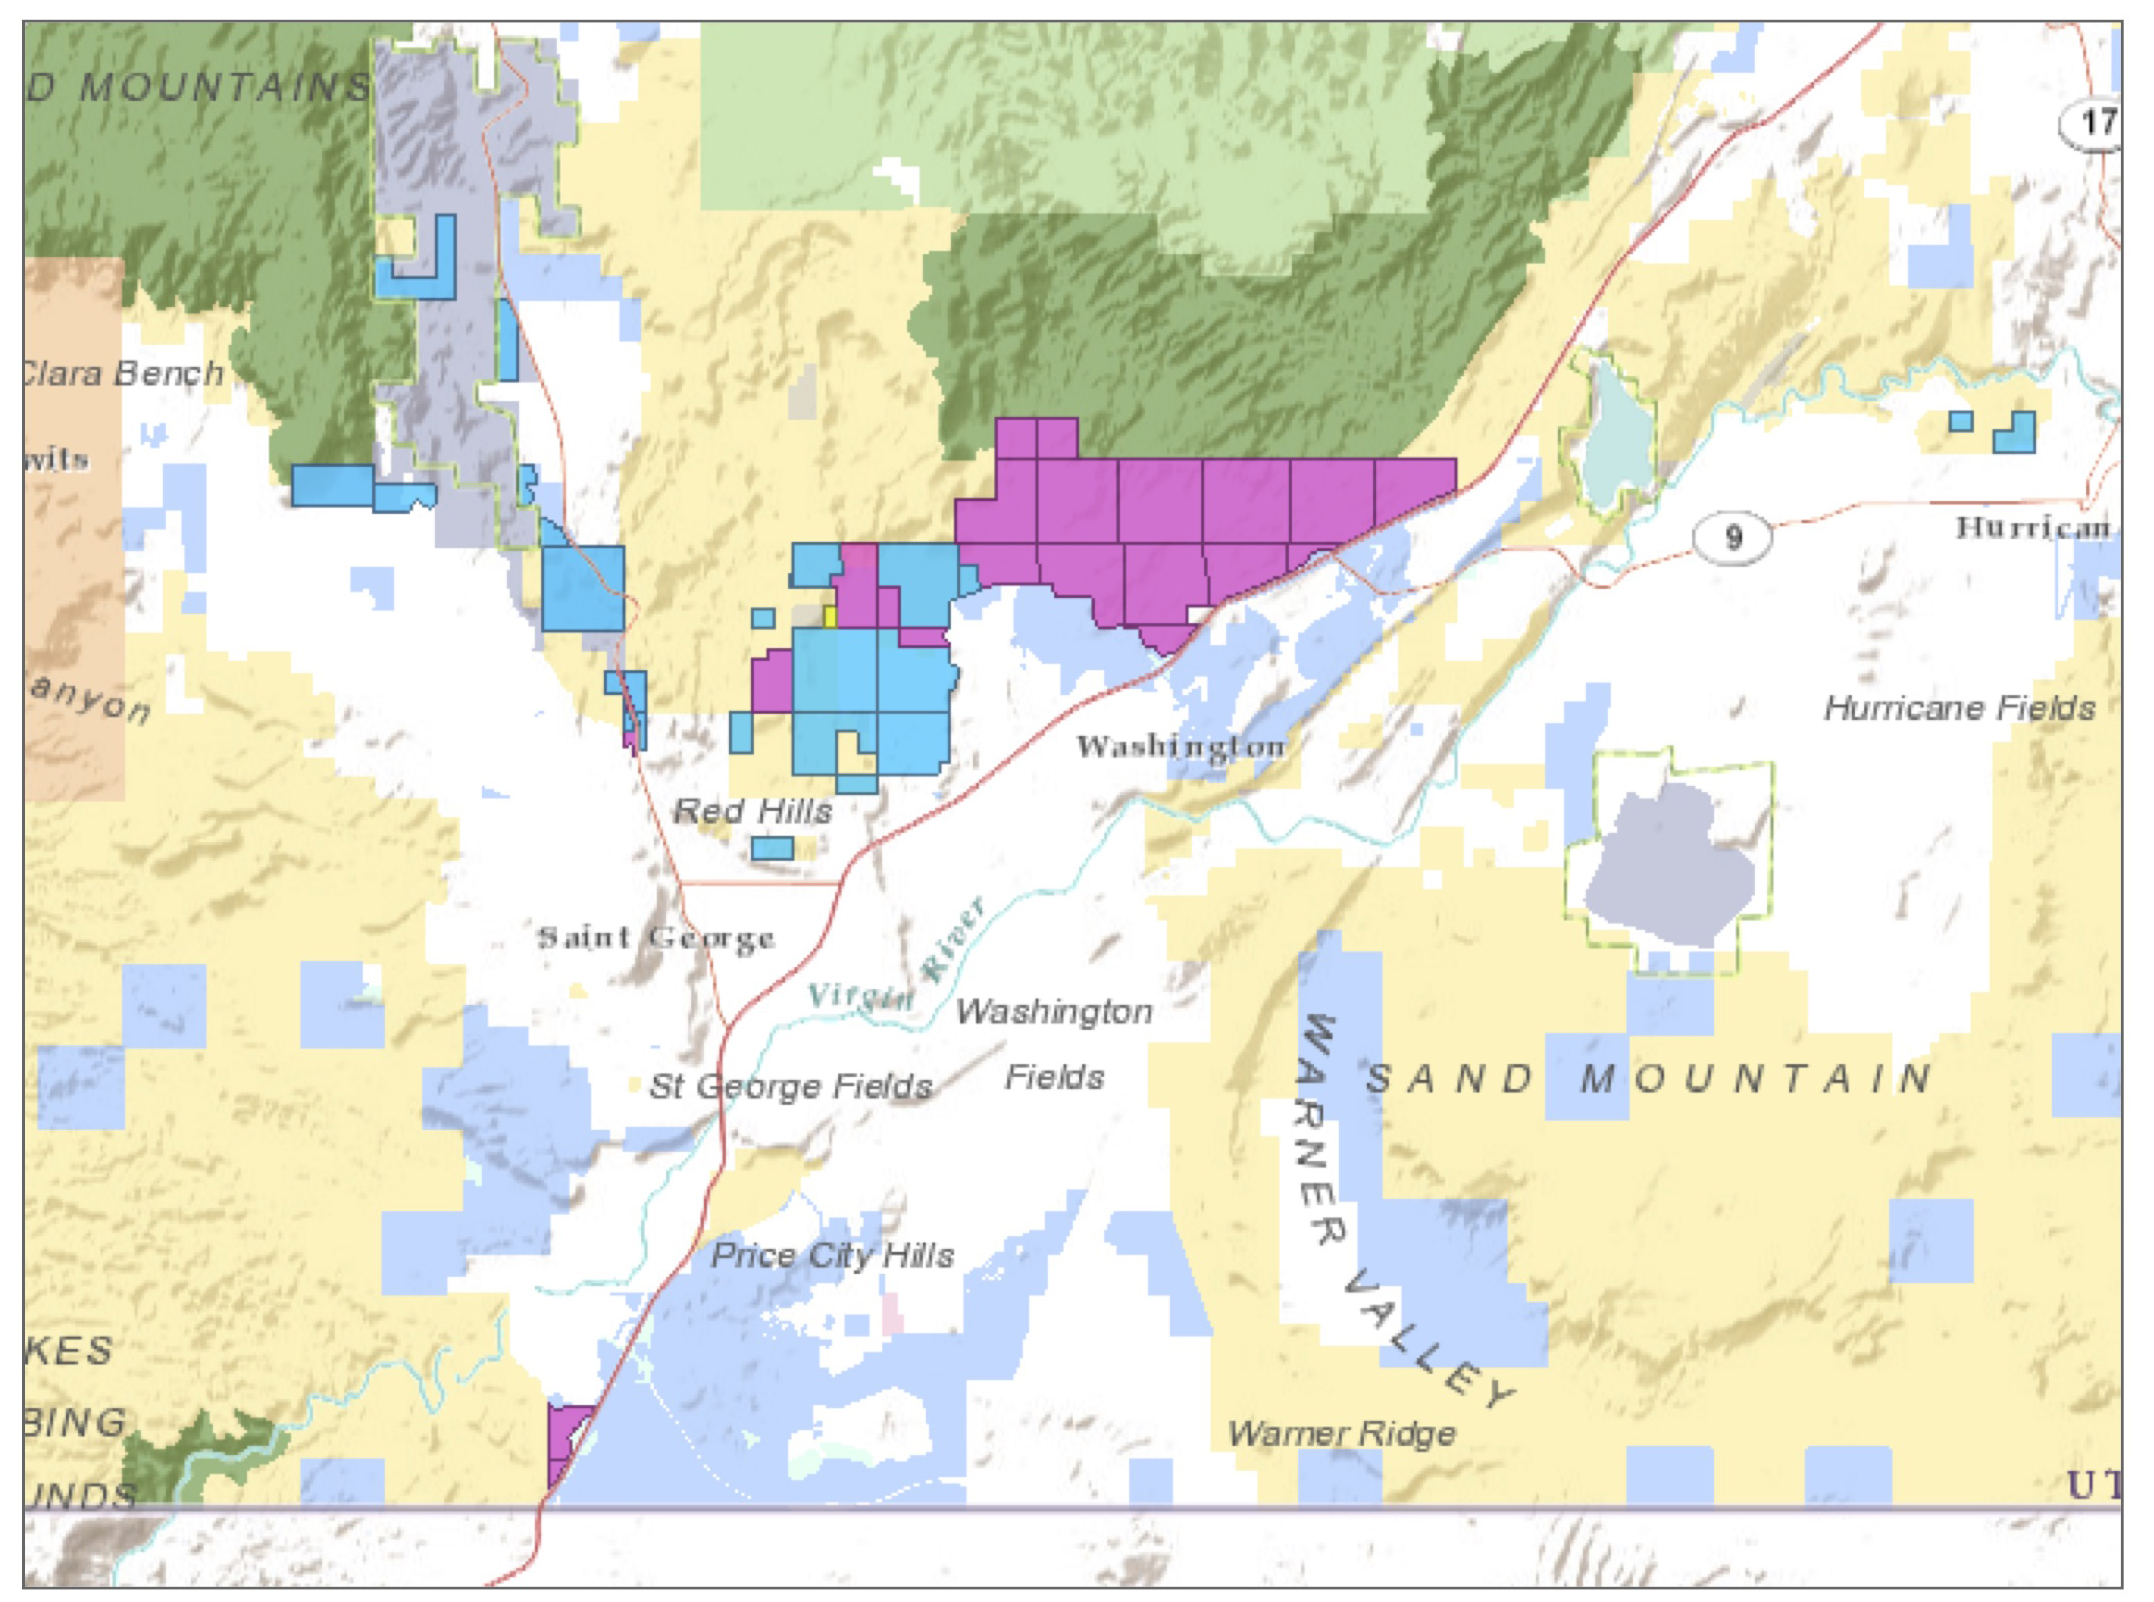 Pink denotes parcels owned by State Institutional Trust Lands that could potentially be transferred to the Bureau of Land Management in a complex trade triggered by the expansion of the Utah Test and Training Range   Image courtesy of SITLA, St. George News